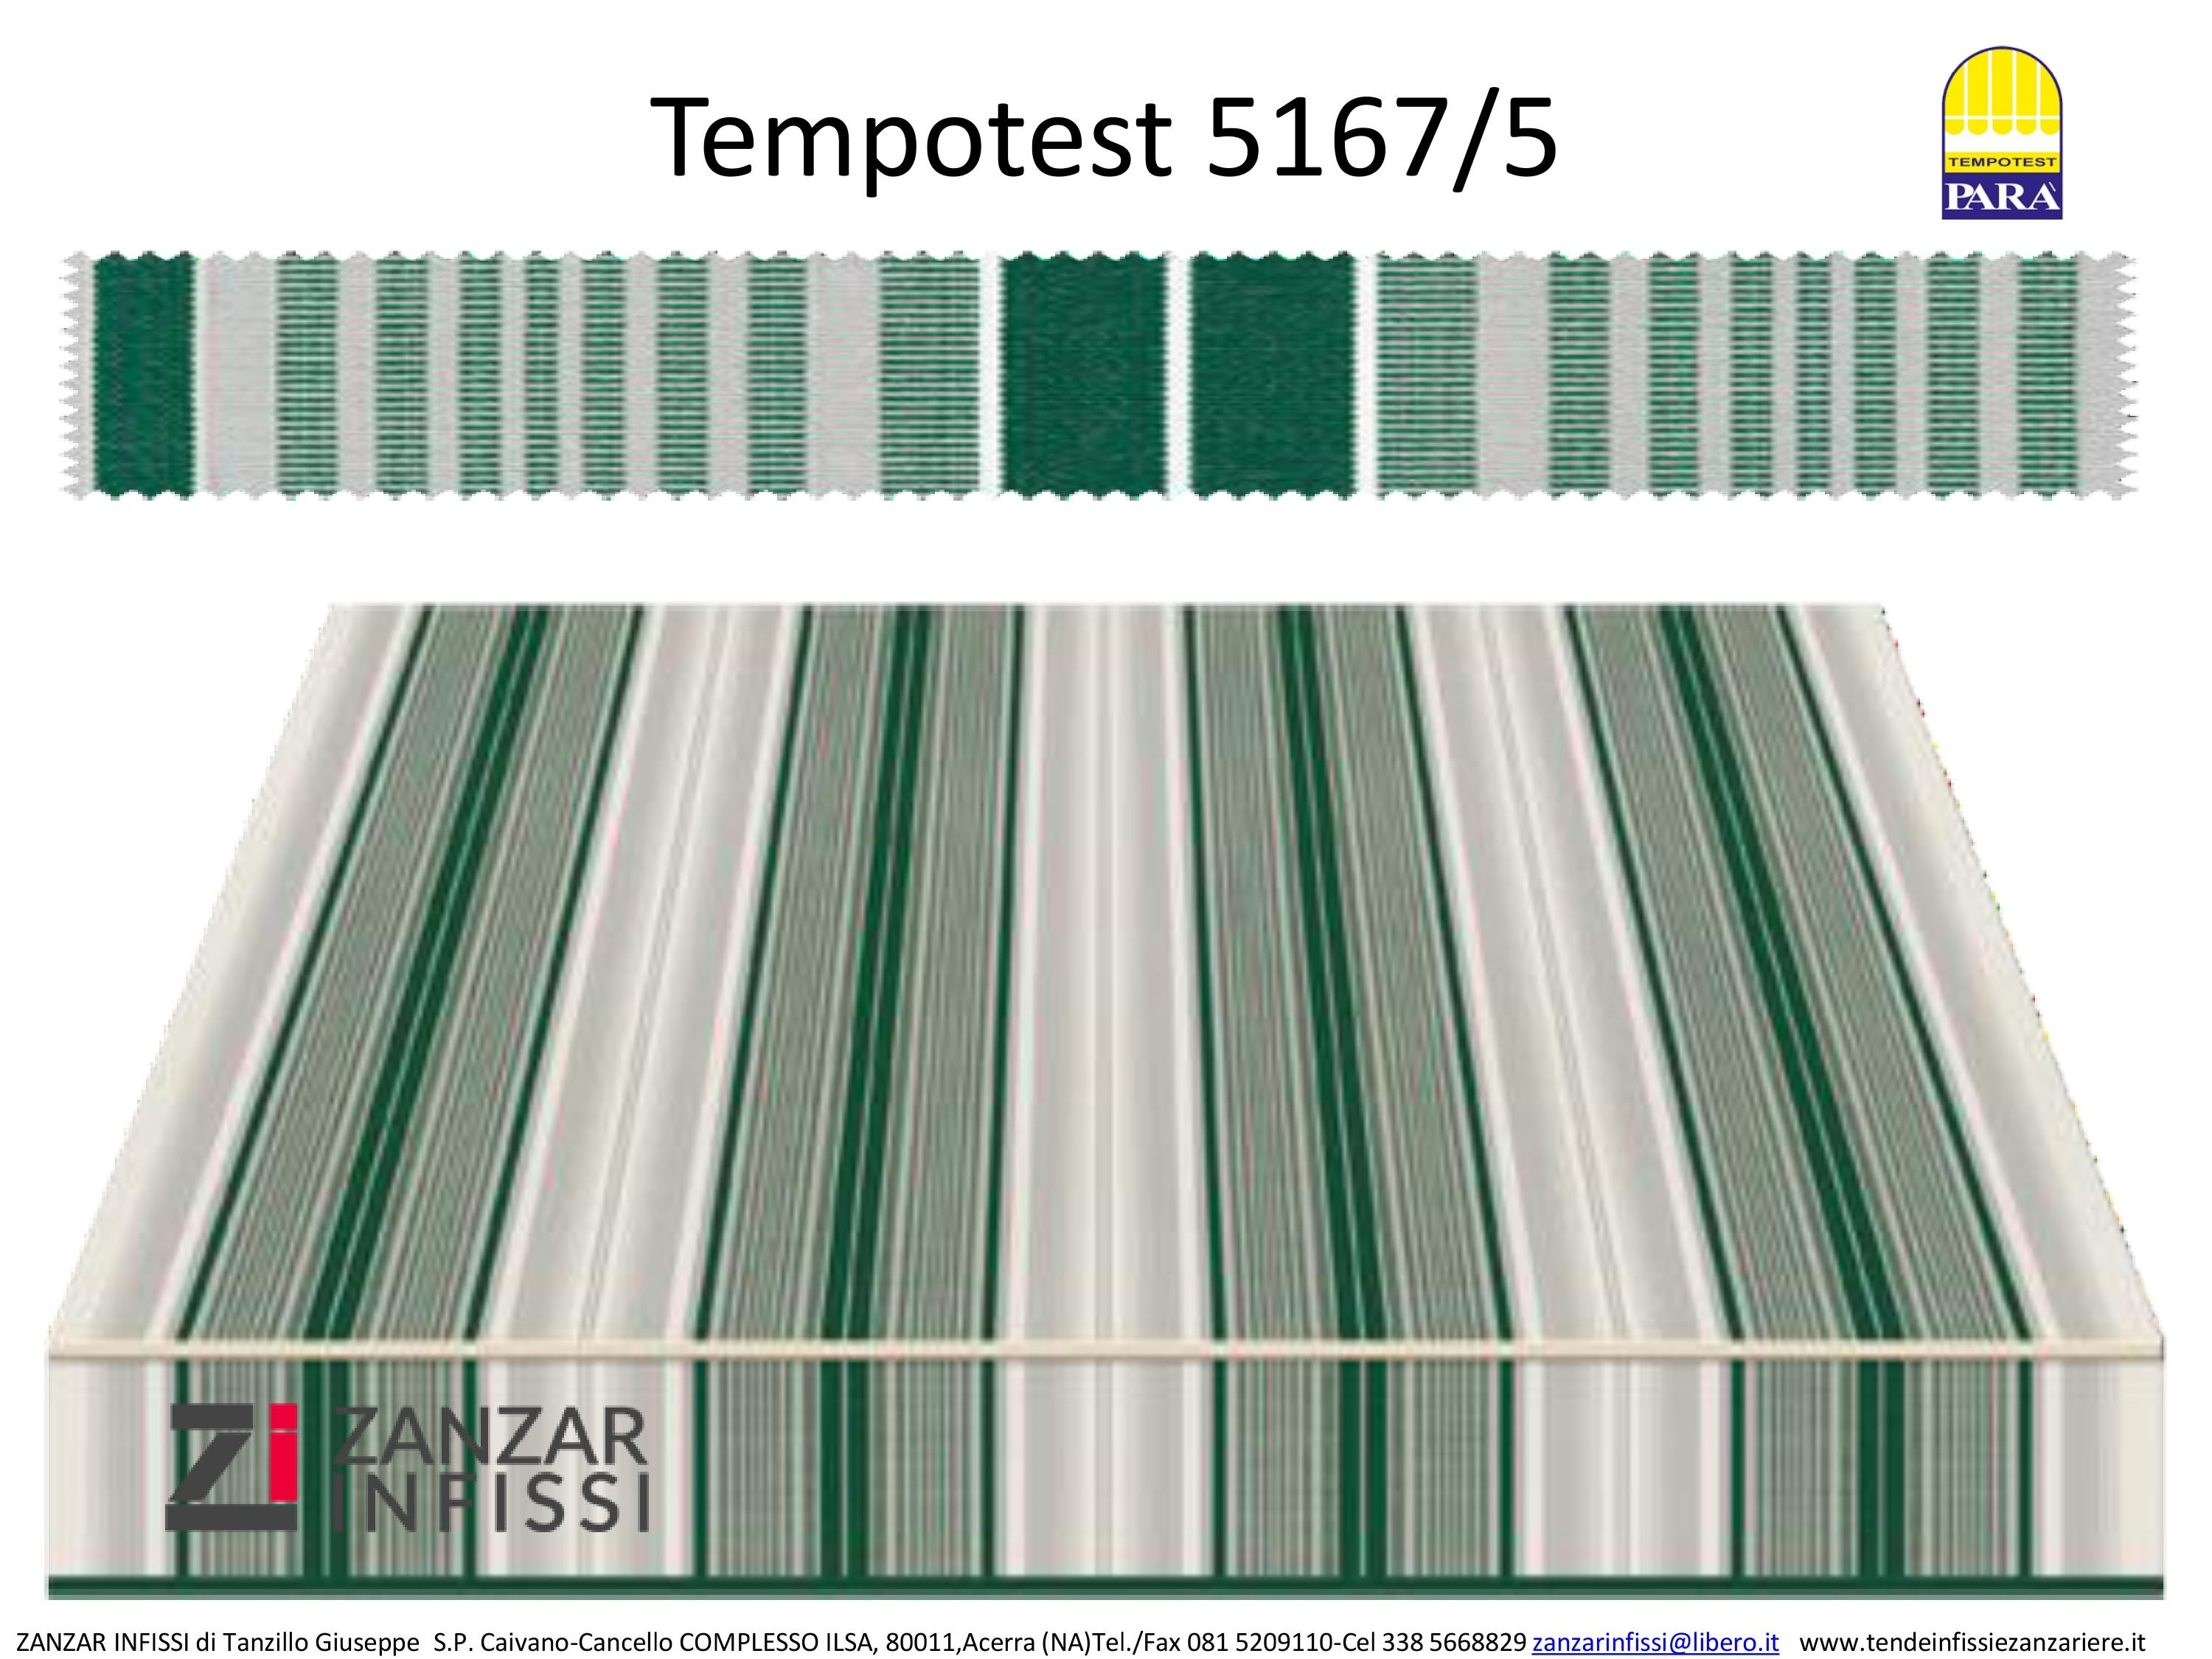 Tempotest 5167/5